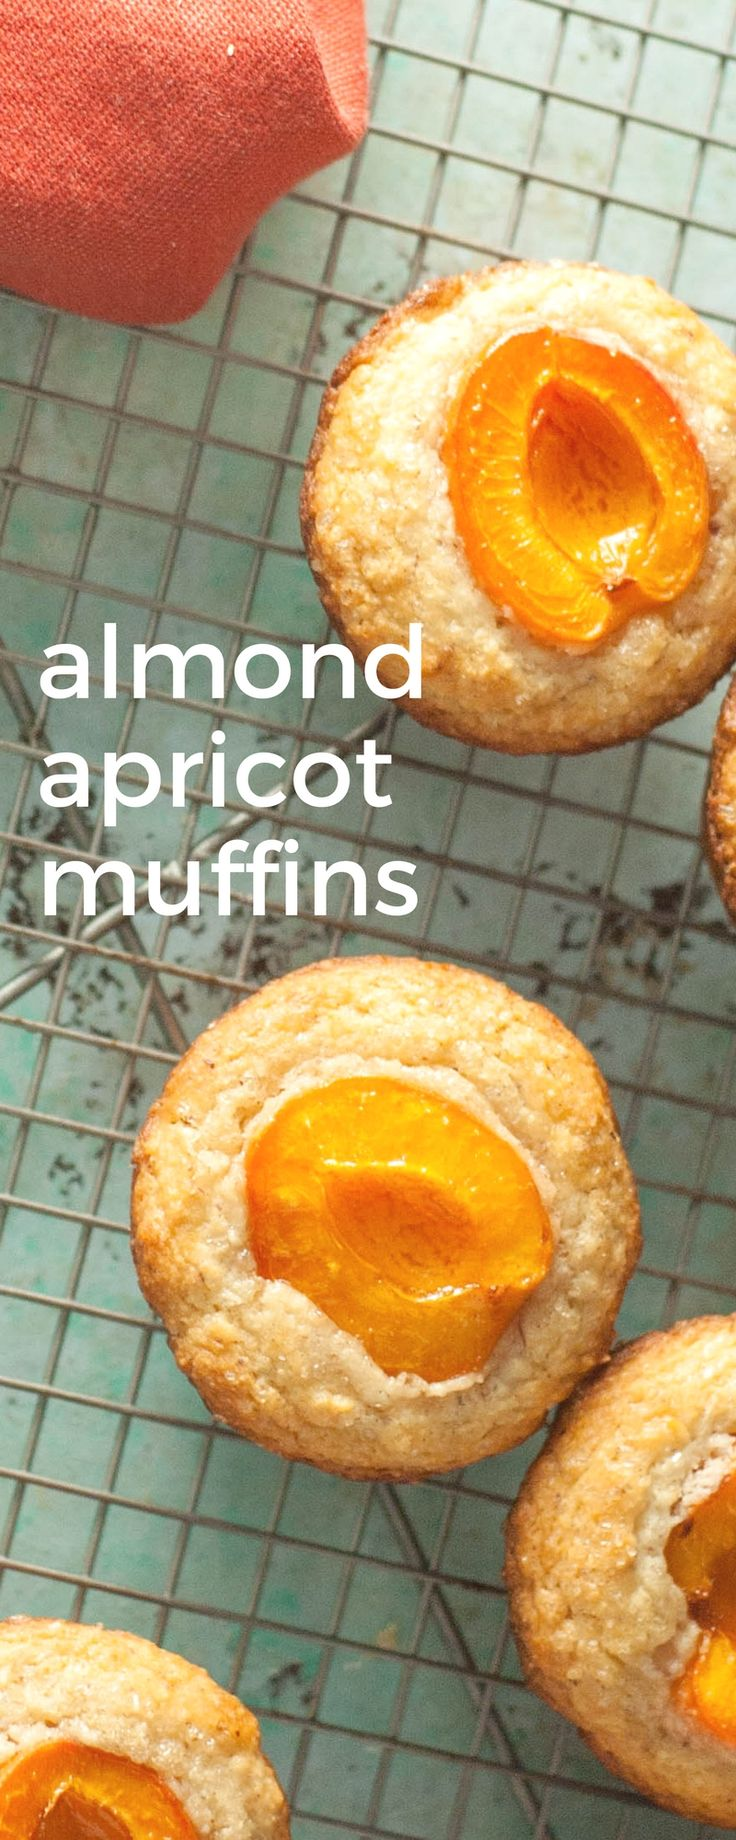 Almond Apricot Muffins. A nutty almond muffin crowned with half an apricot sprinkled with sugar. Gluten-free friendly. via @blossomtostem